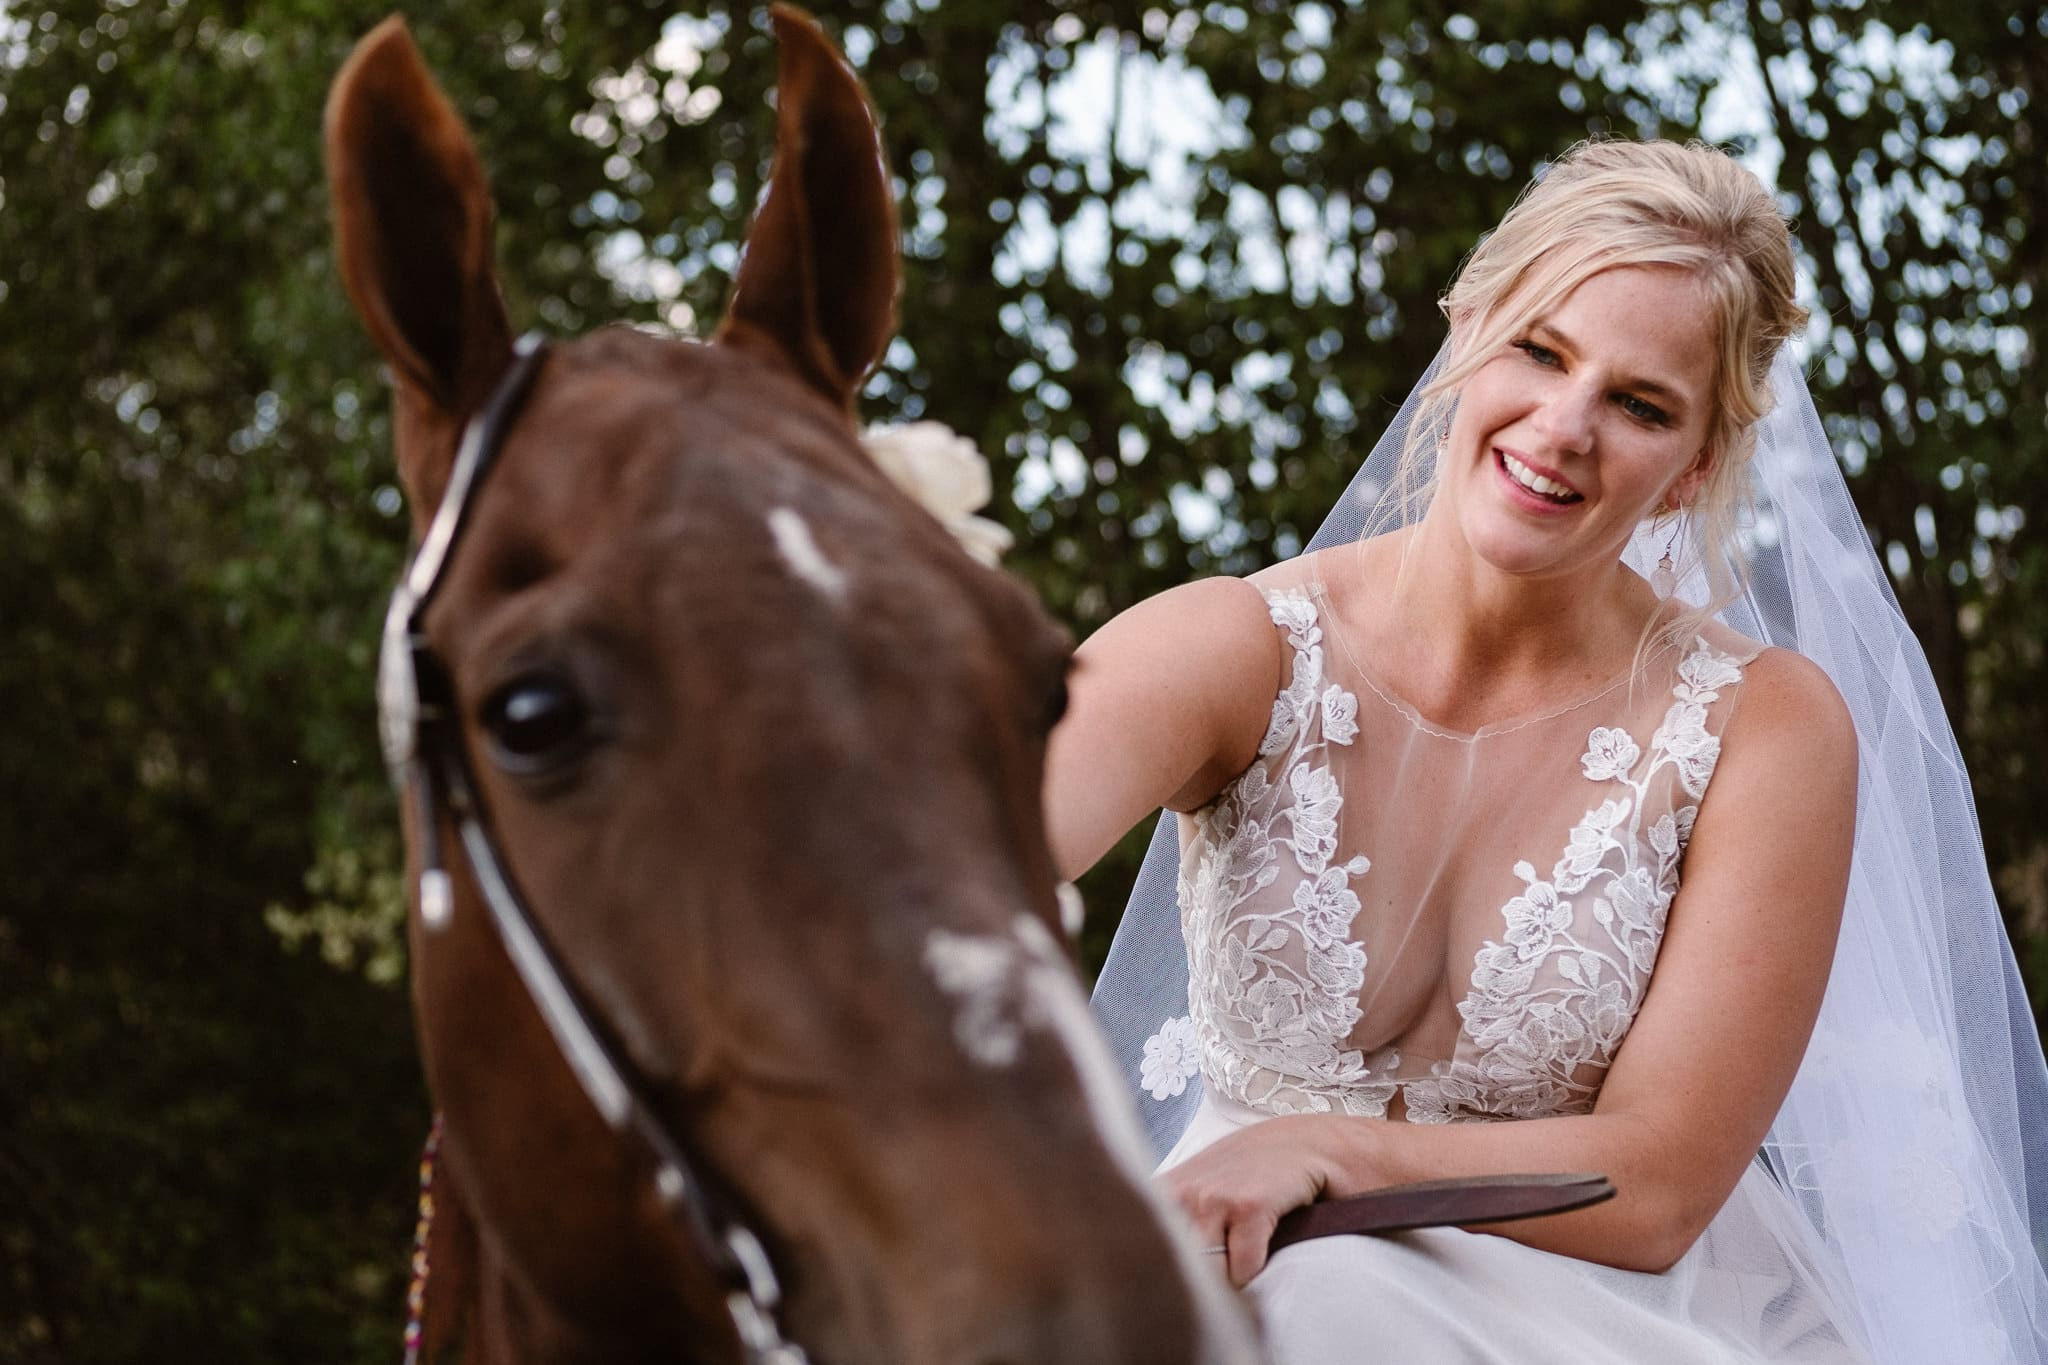 Steamboat Springs wedding photographer, La Joya Dulce wedding, Colorado ranch wedding venues, outdoor wedding ceremony, Colorado wedding, Rocky Mountain wedding, ranch wedding, bride petting horse